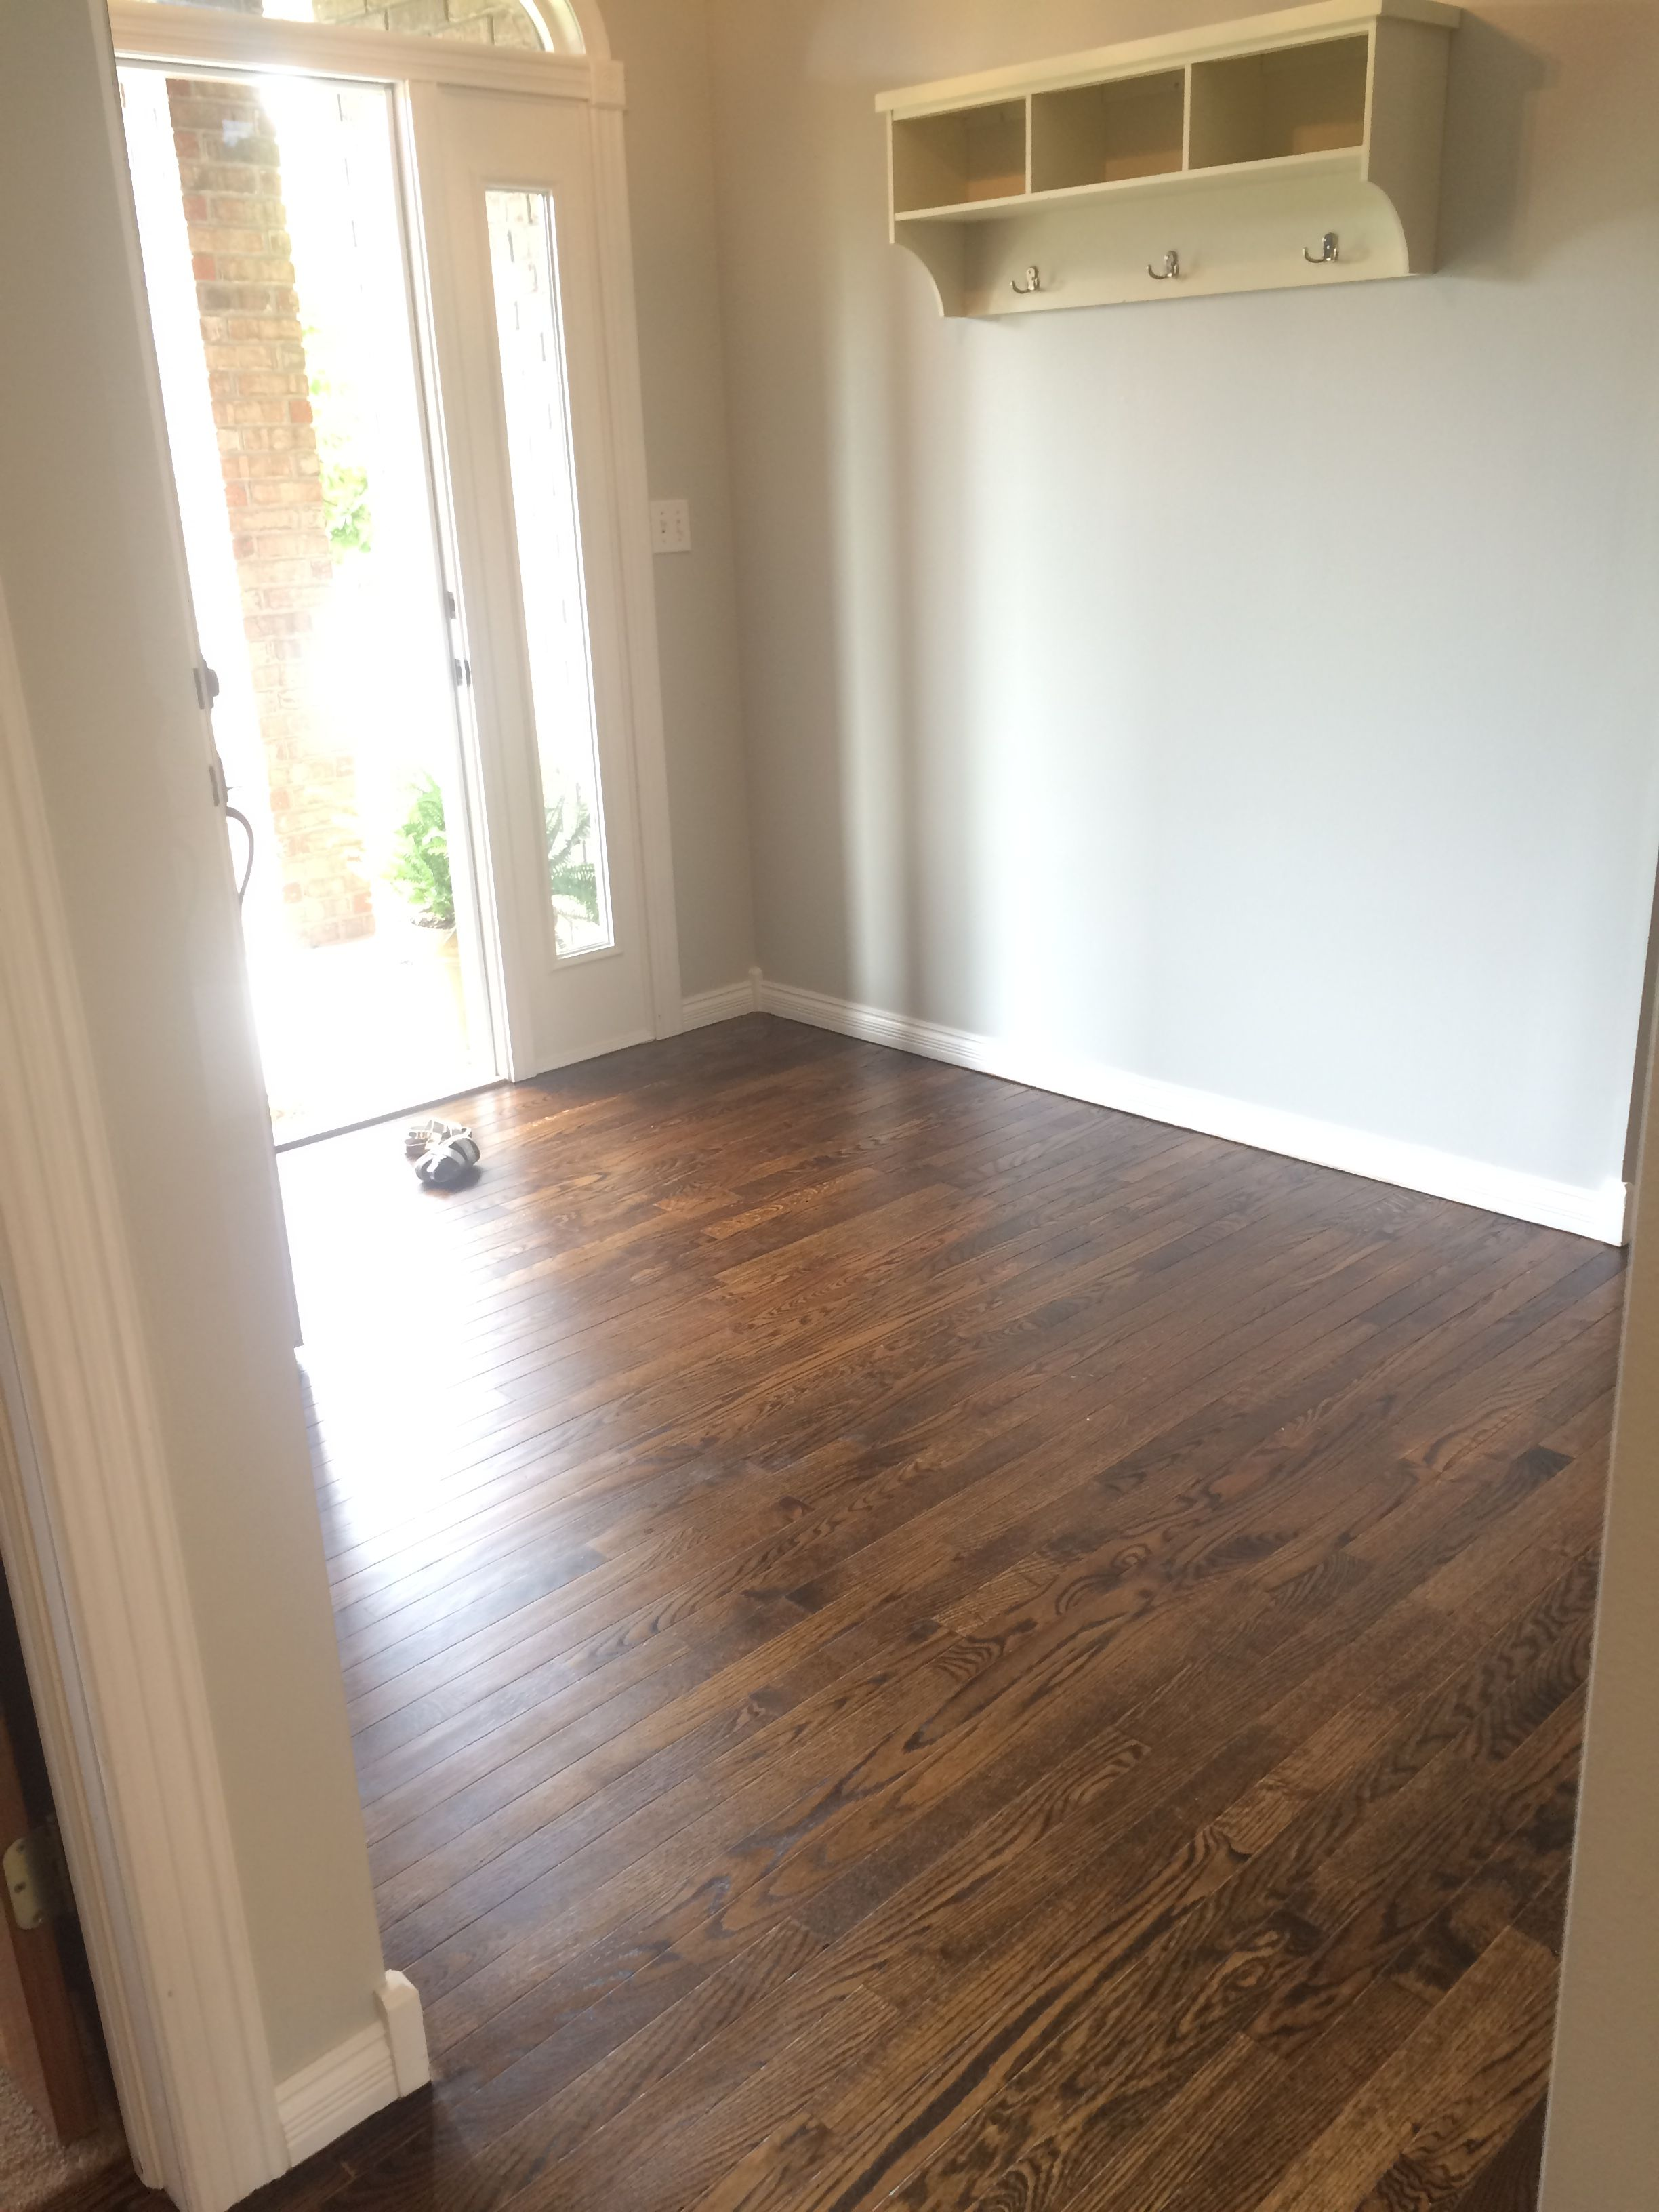 Hardwood Floor Refinishing Is An Affordable Way To Spruce